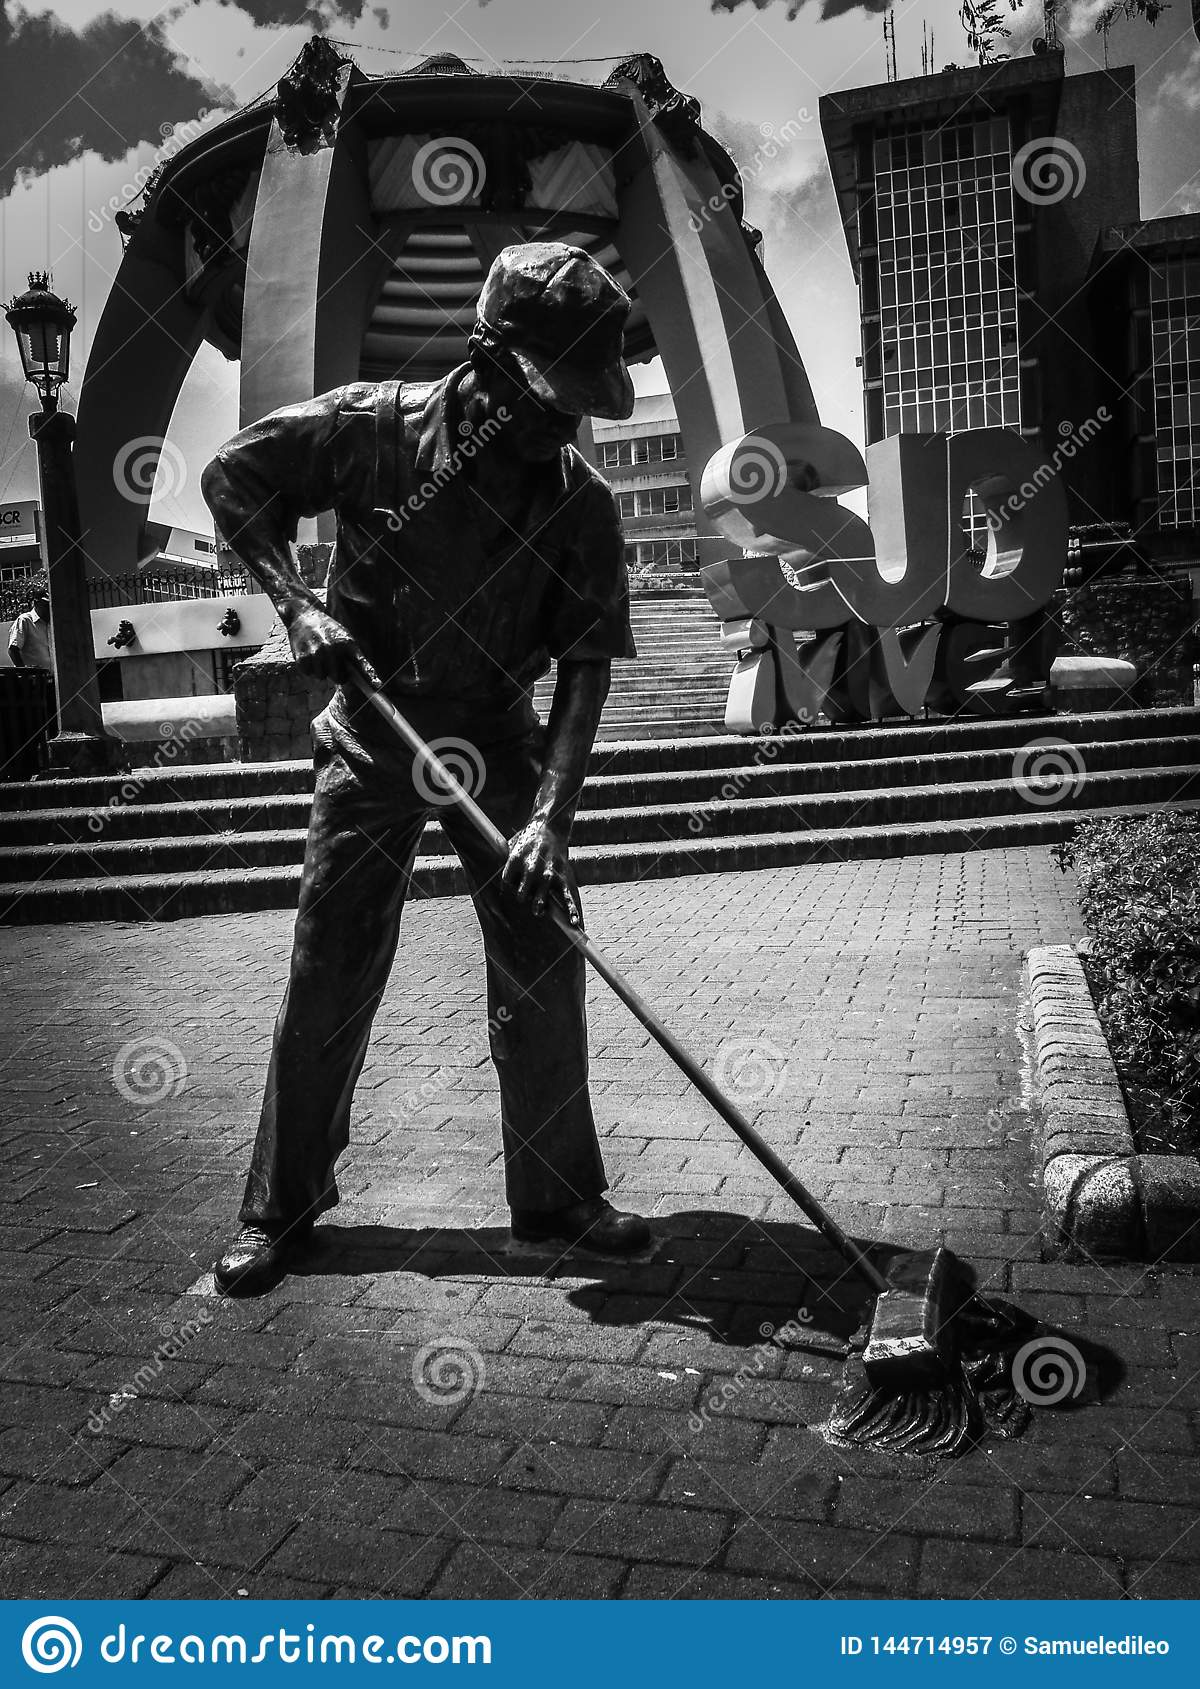 The Street Sweeper Statue.